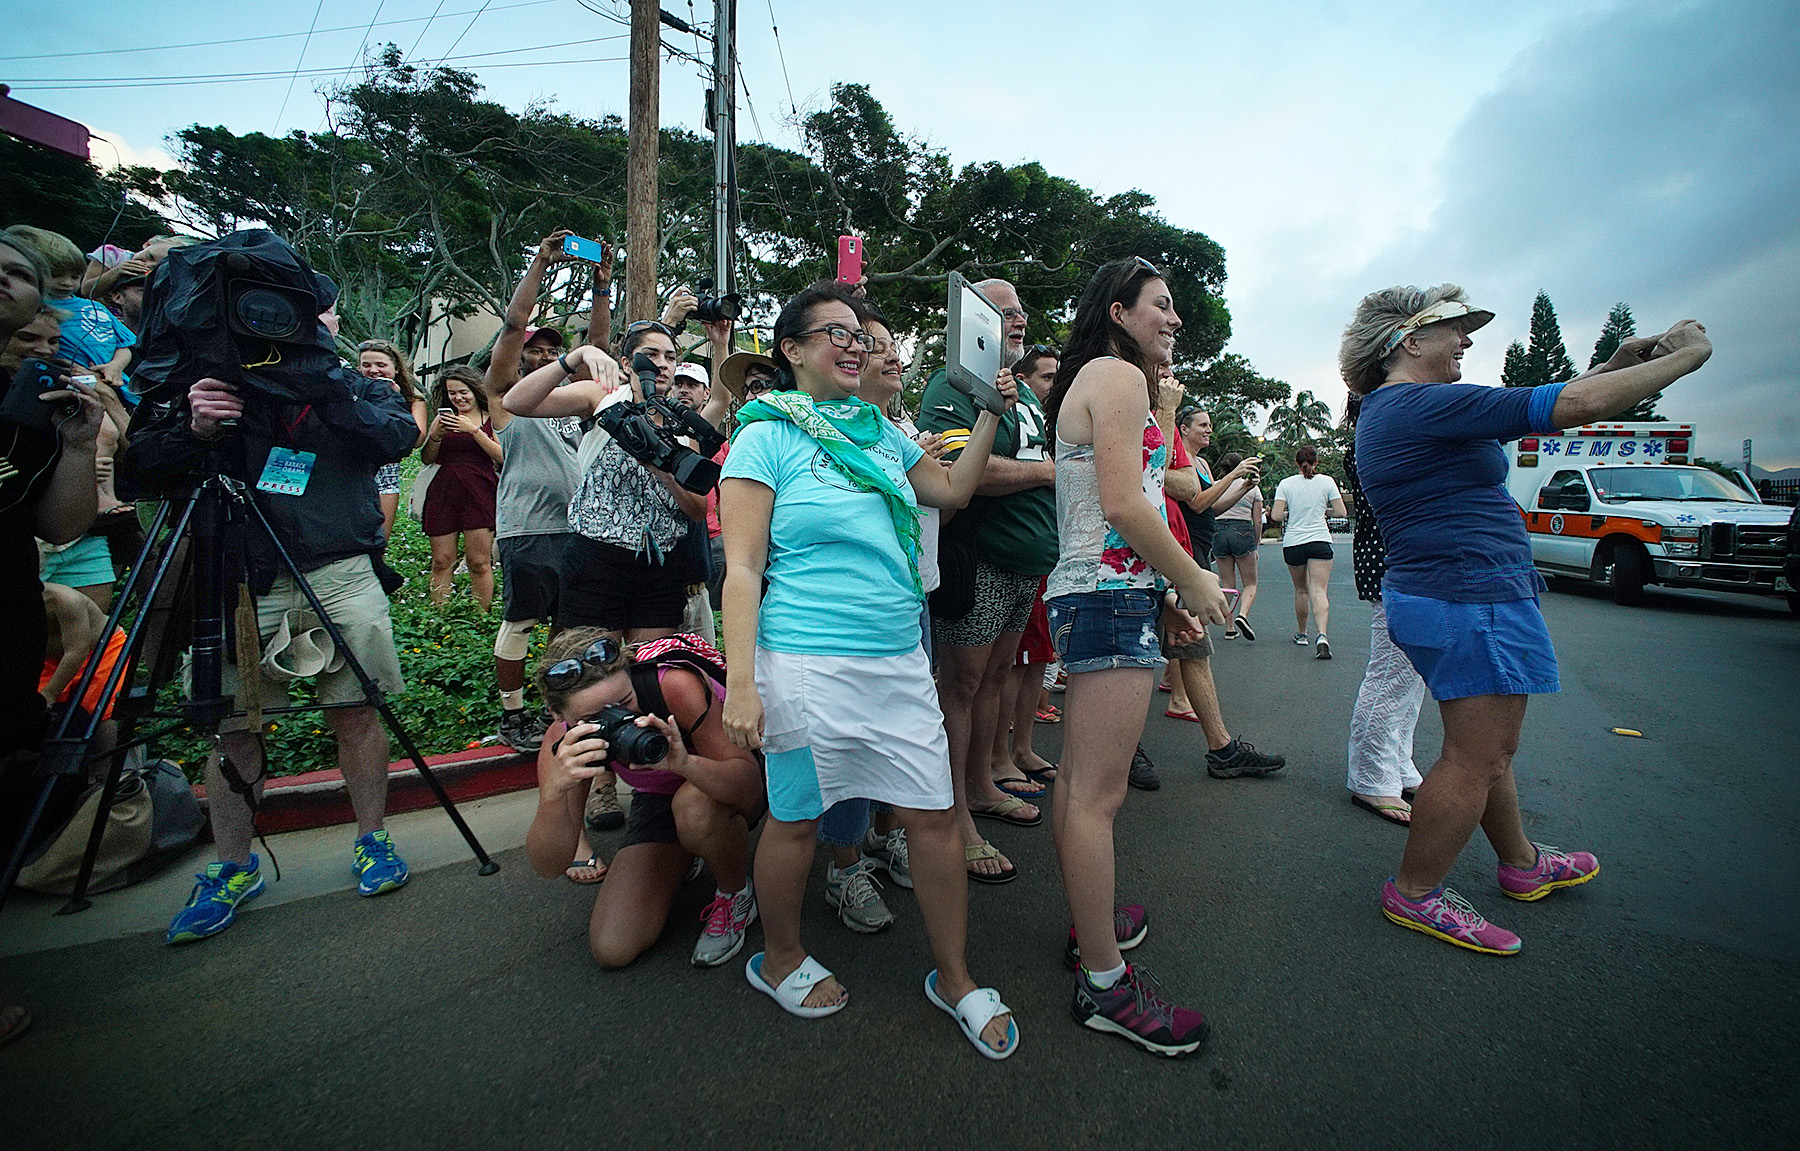 <p>When the president responds to their shouts, onlookers surge ahead of the assembled media to get their own images outside Mid Pacific Country Club in December 2015.</p>